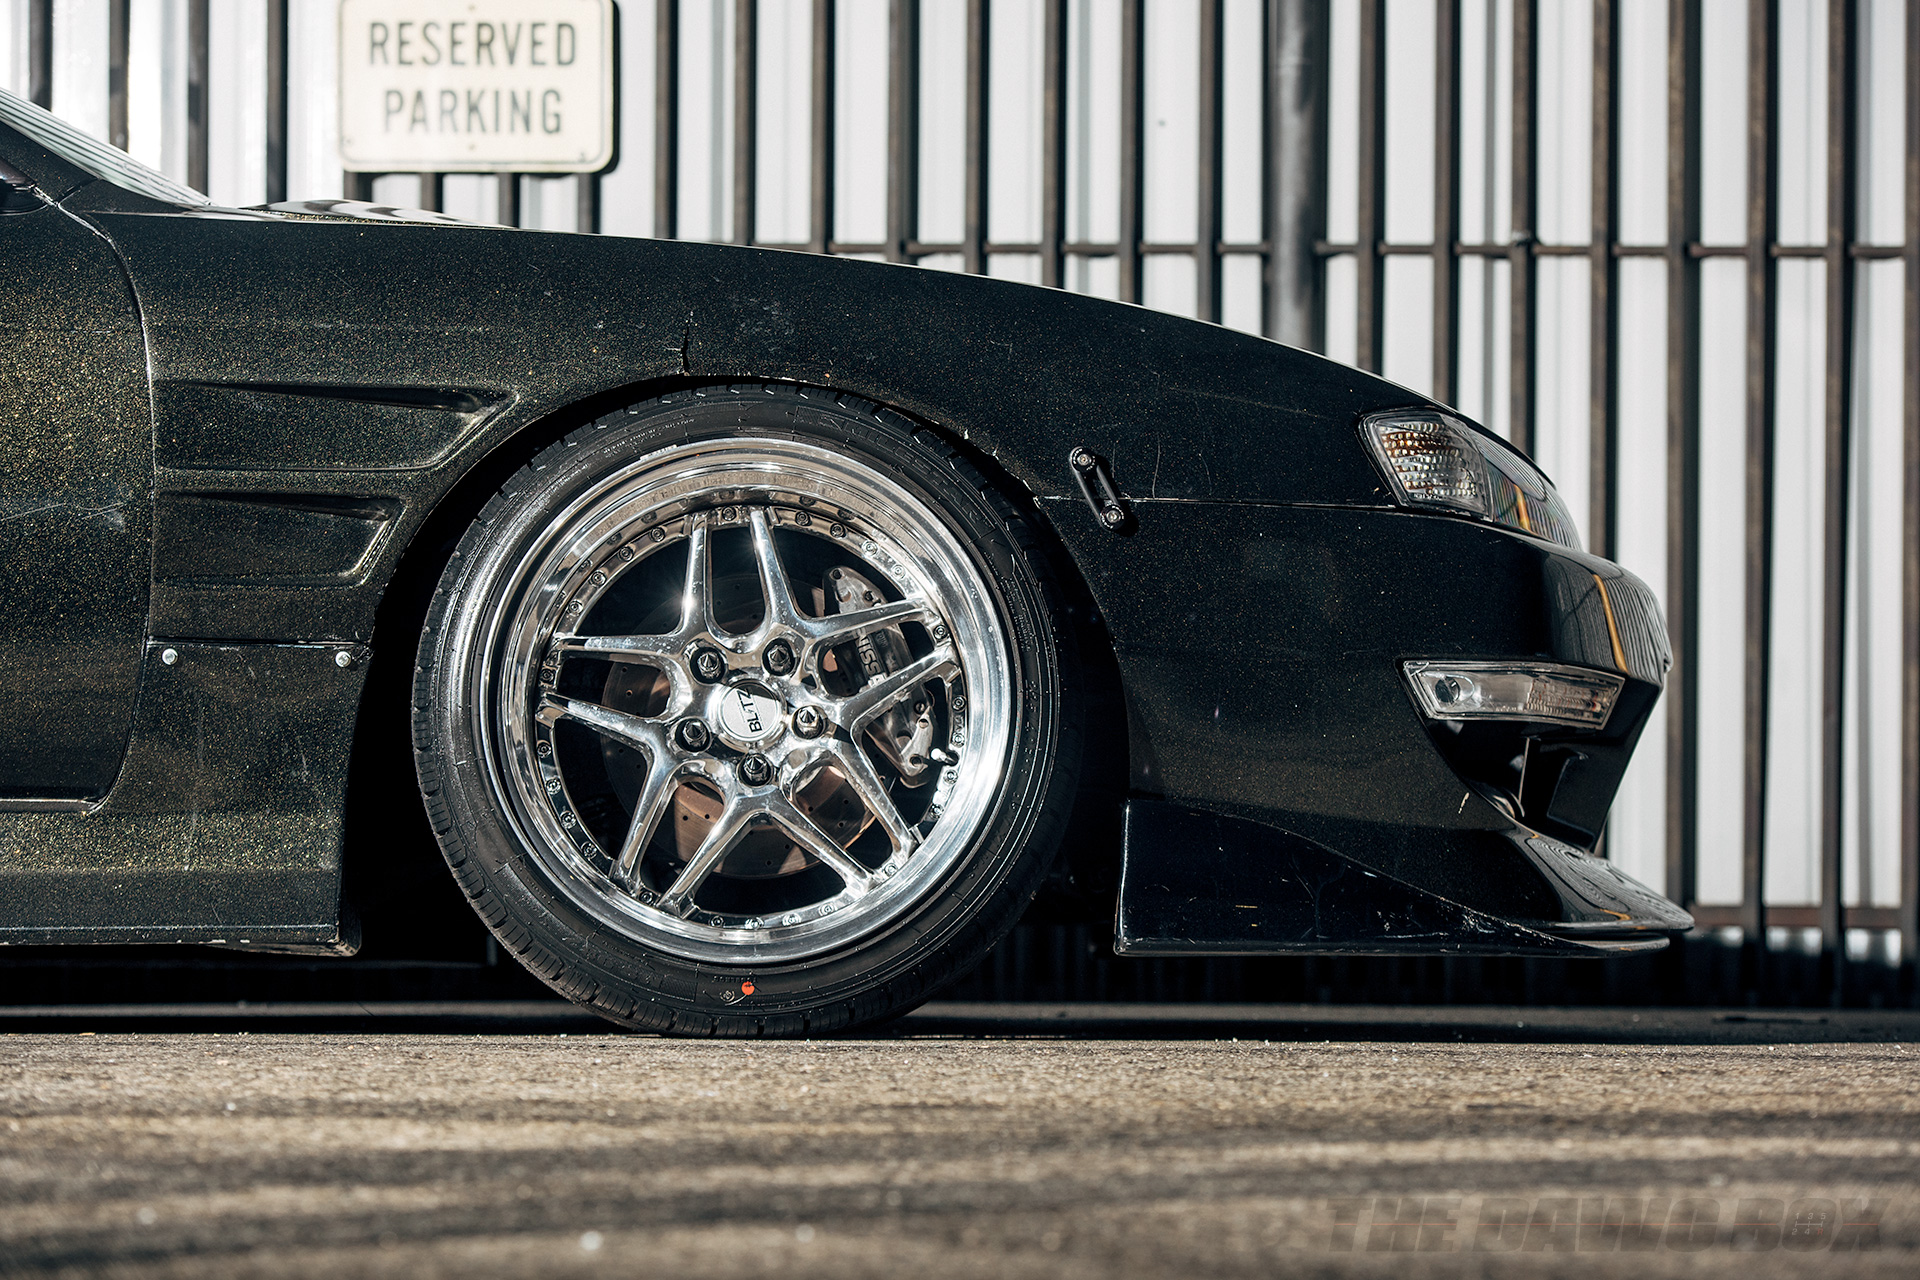 Nissan 240SX s14 with Blitz wheels and Milestar MS932 XP+ tires